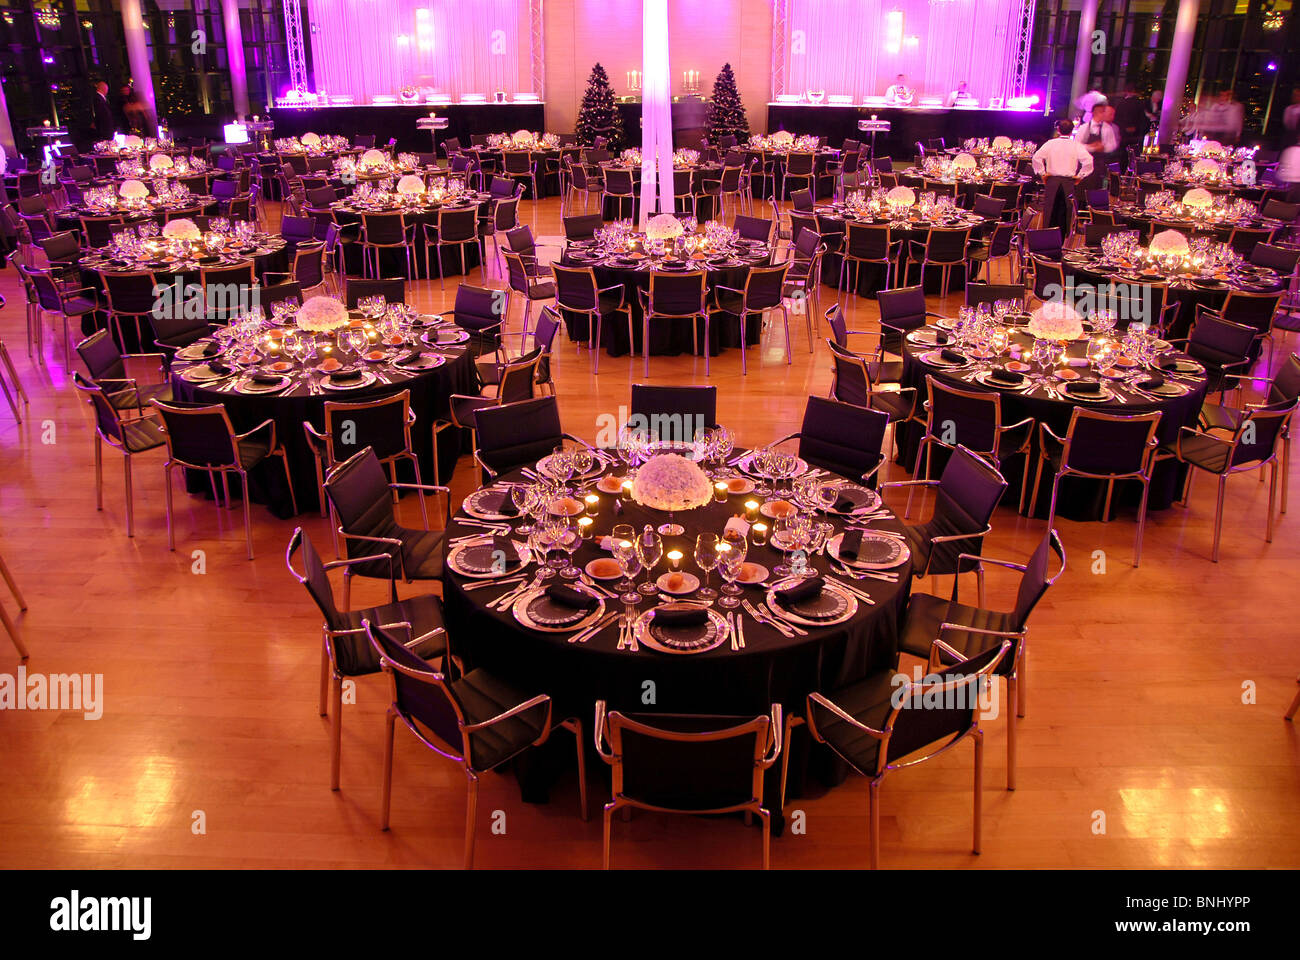 Corporate Event Decoration Ideas